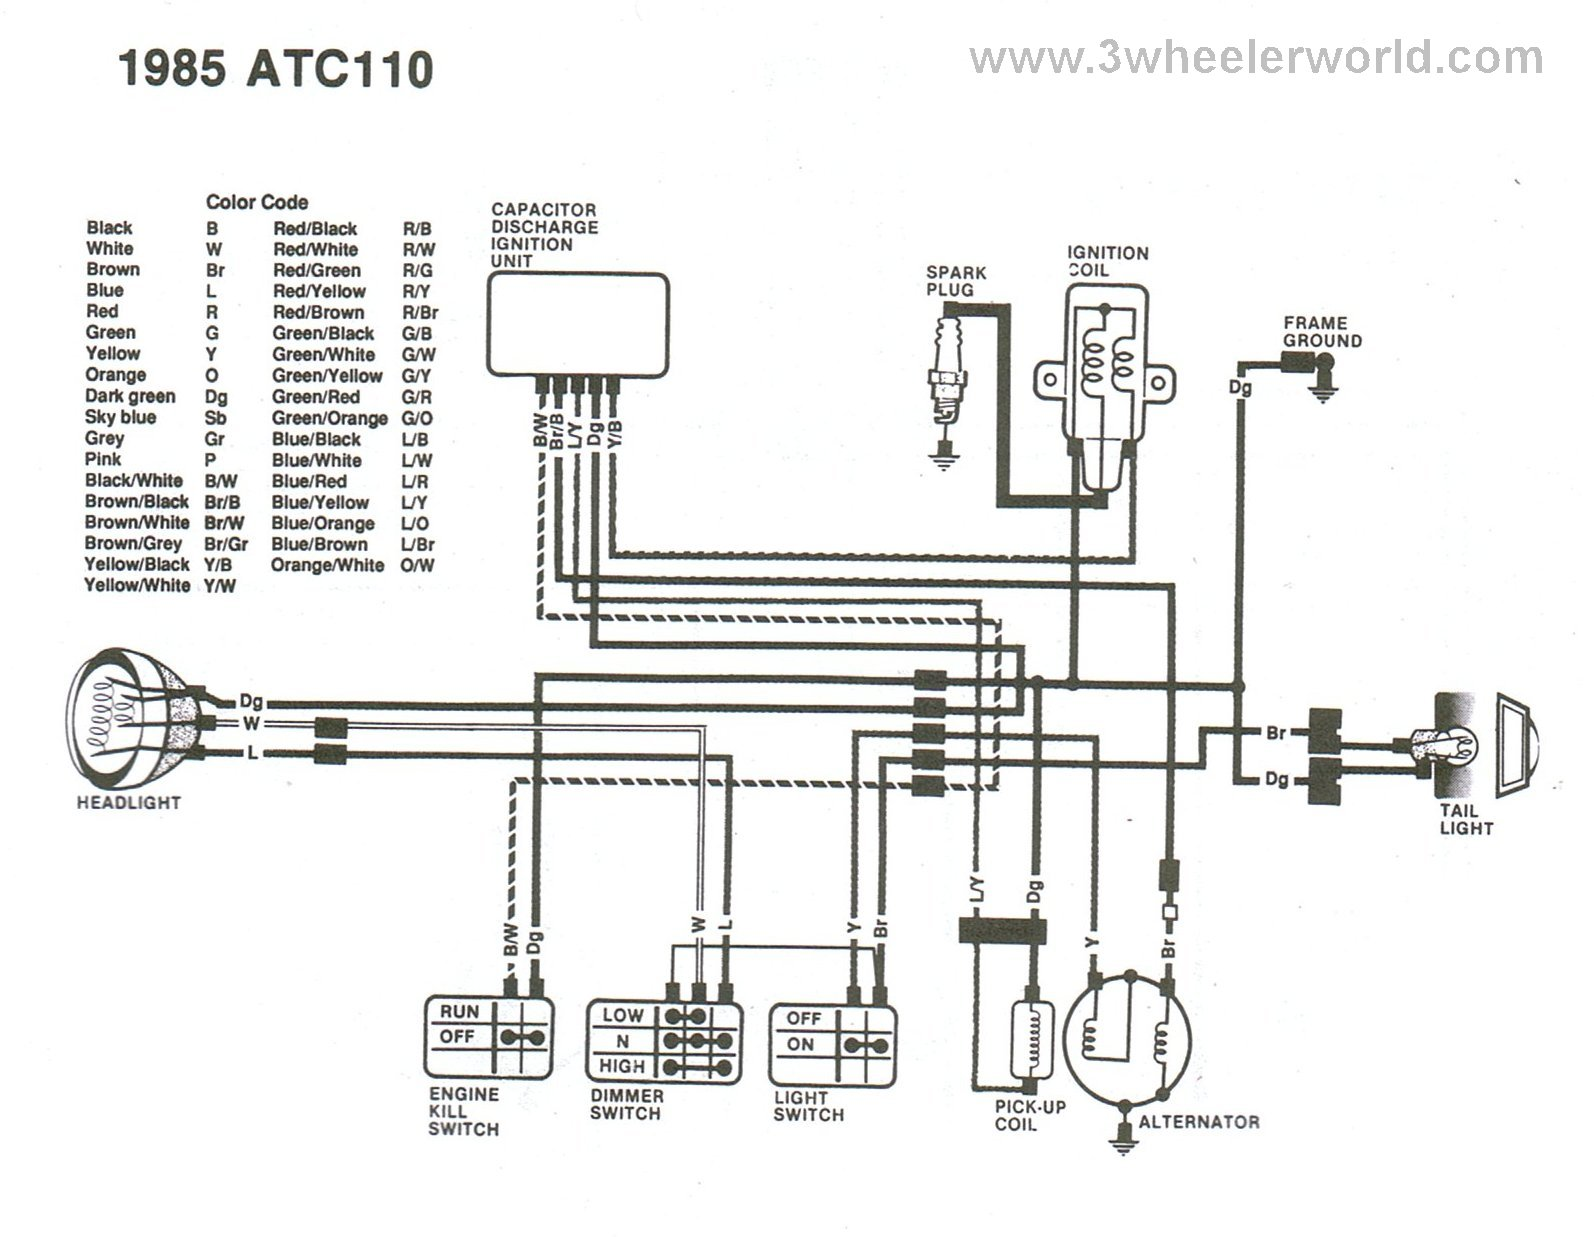 ATC110x85 1980 honda atc 110 wiring diagram honda 50 wiring diagram \u2022 wiring honda big red wiring diagram at bayanpartner.co